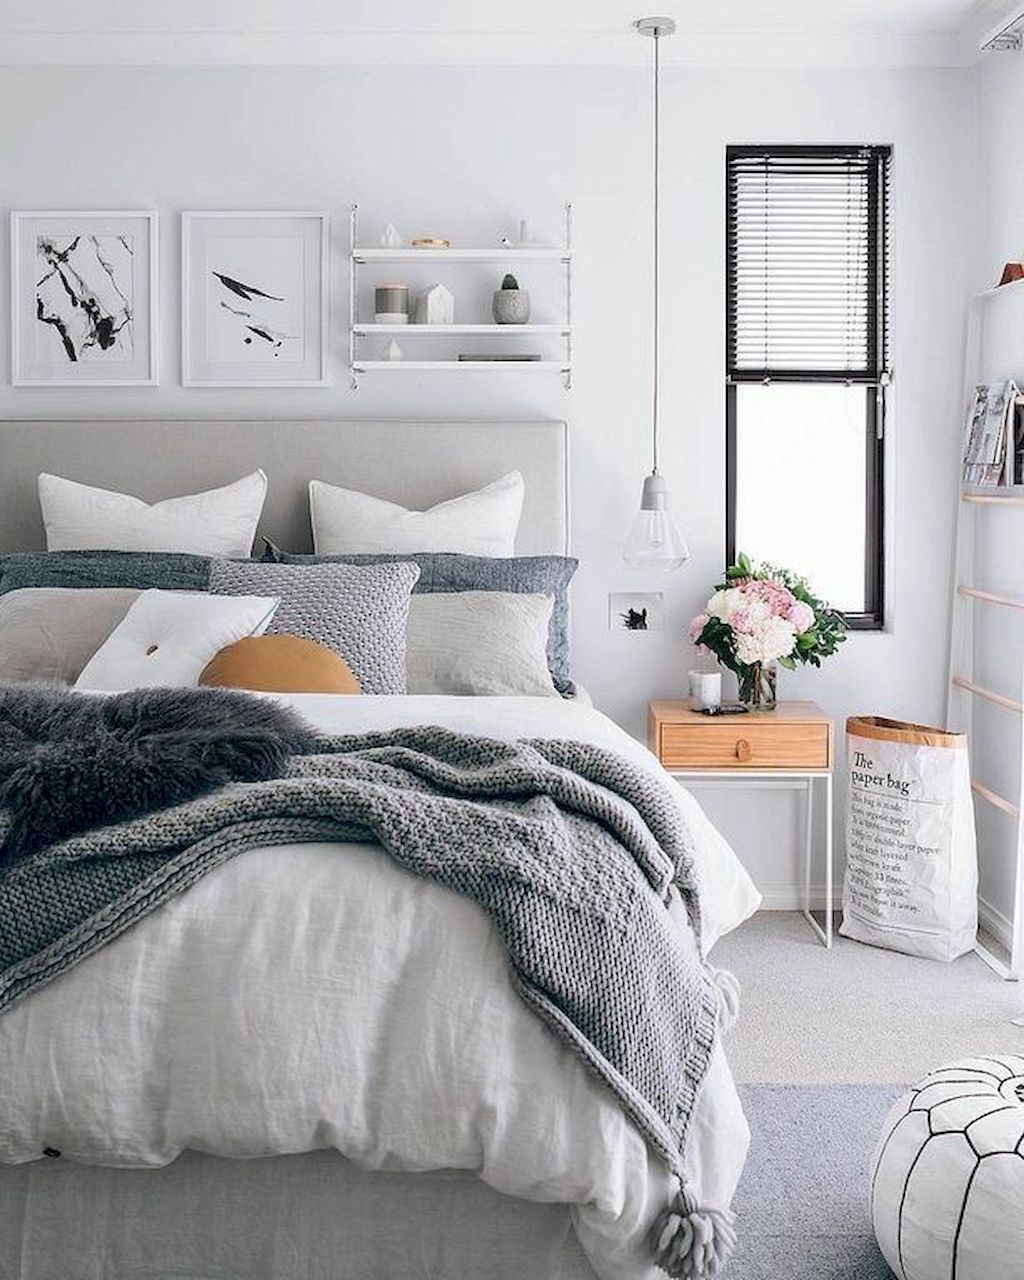 Best Use Of Fabric Headboard In Light Gray Sand With Gray And 400 x 300